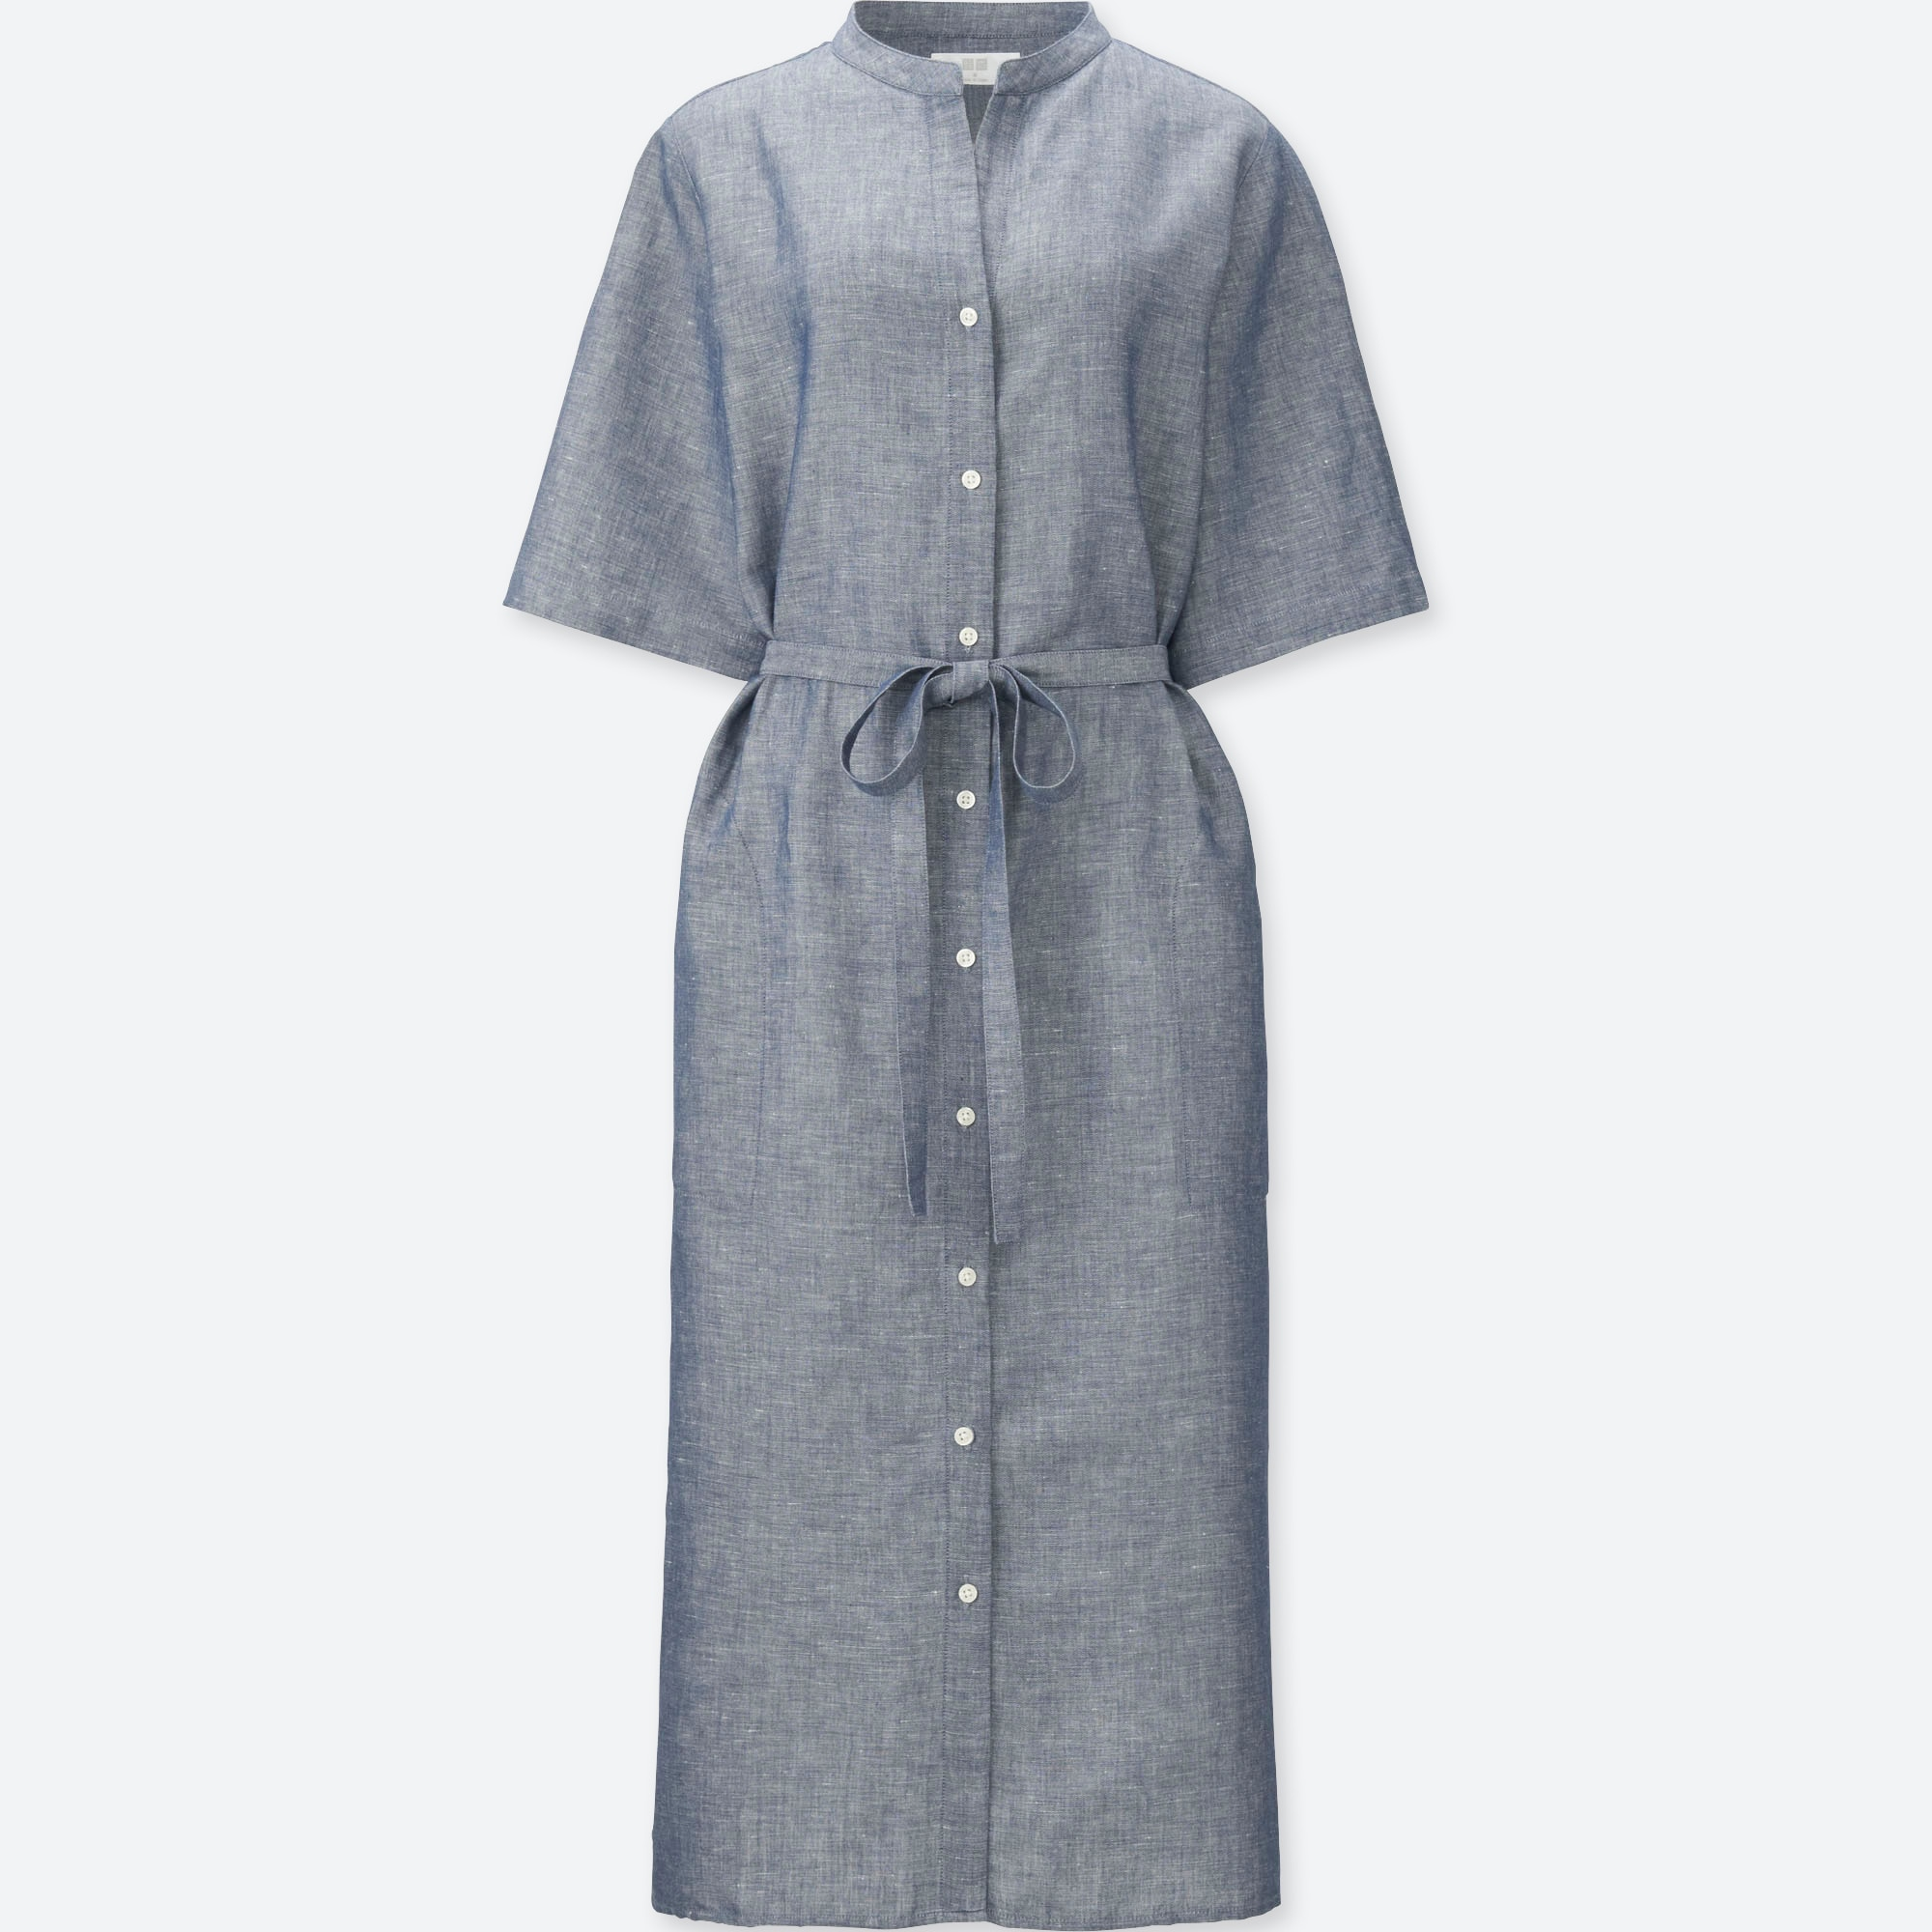 Women Linen Cotton Short Sleeve Shirt Dress Uniqlo Us